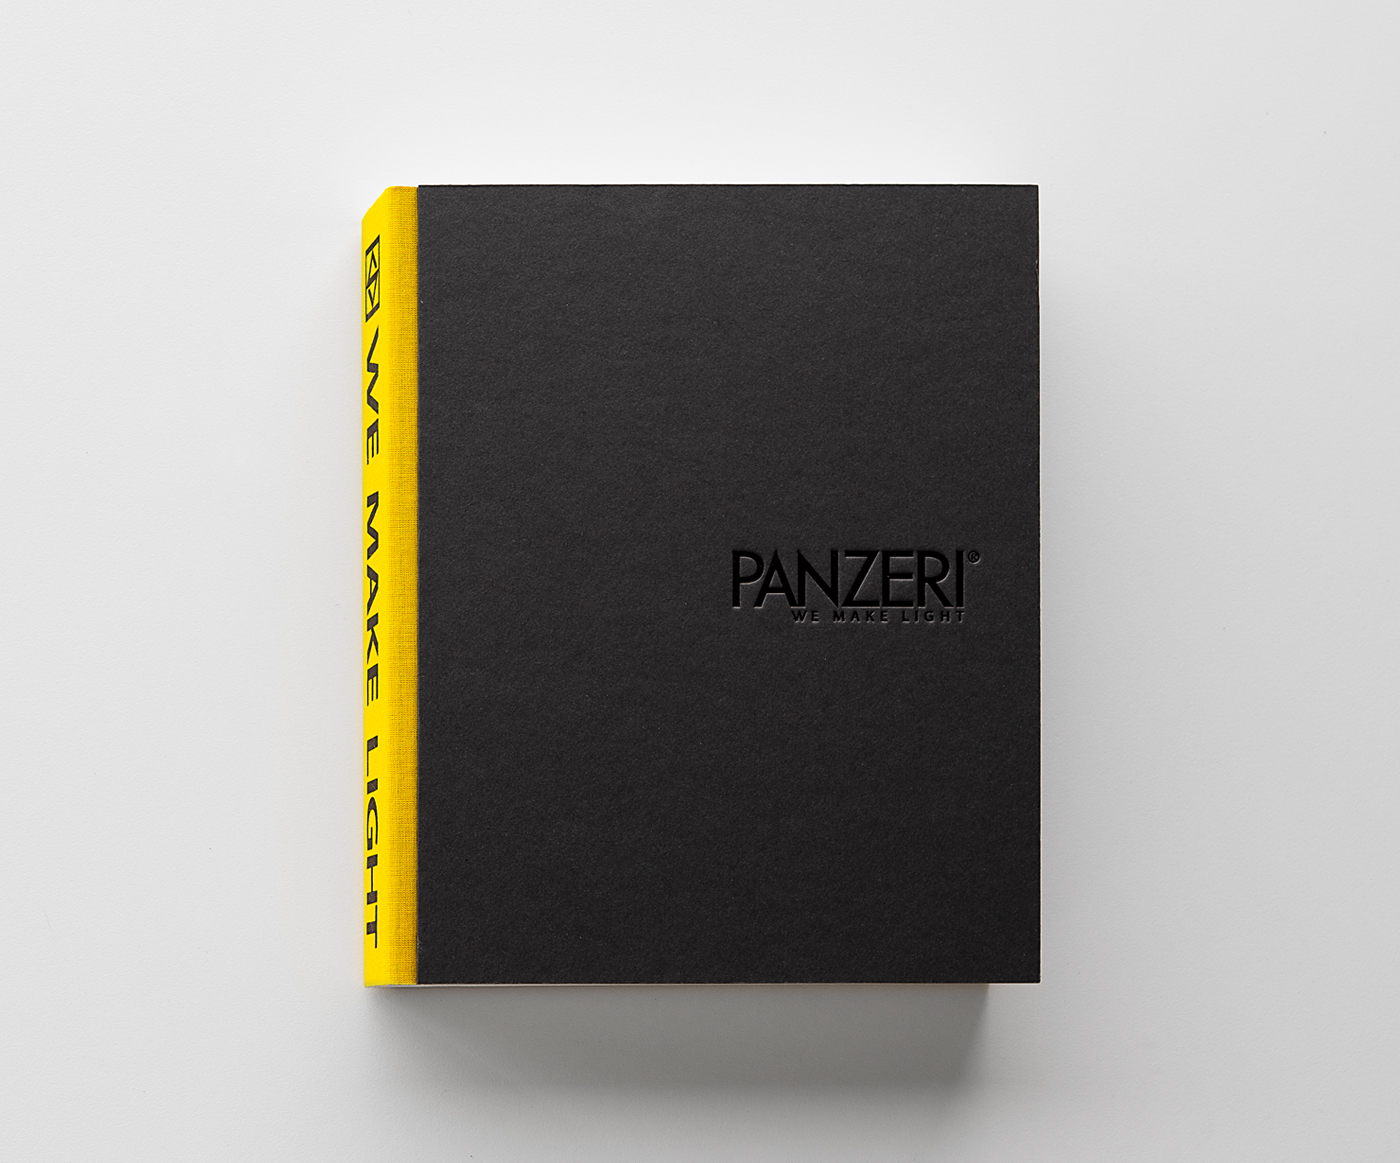 PANZERI - Catalogue